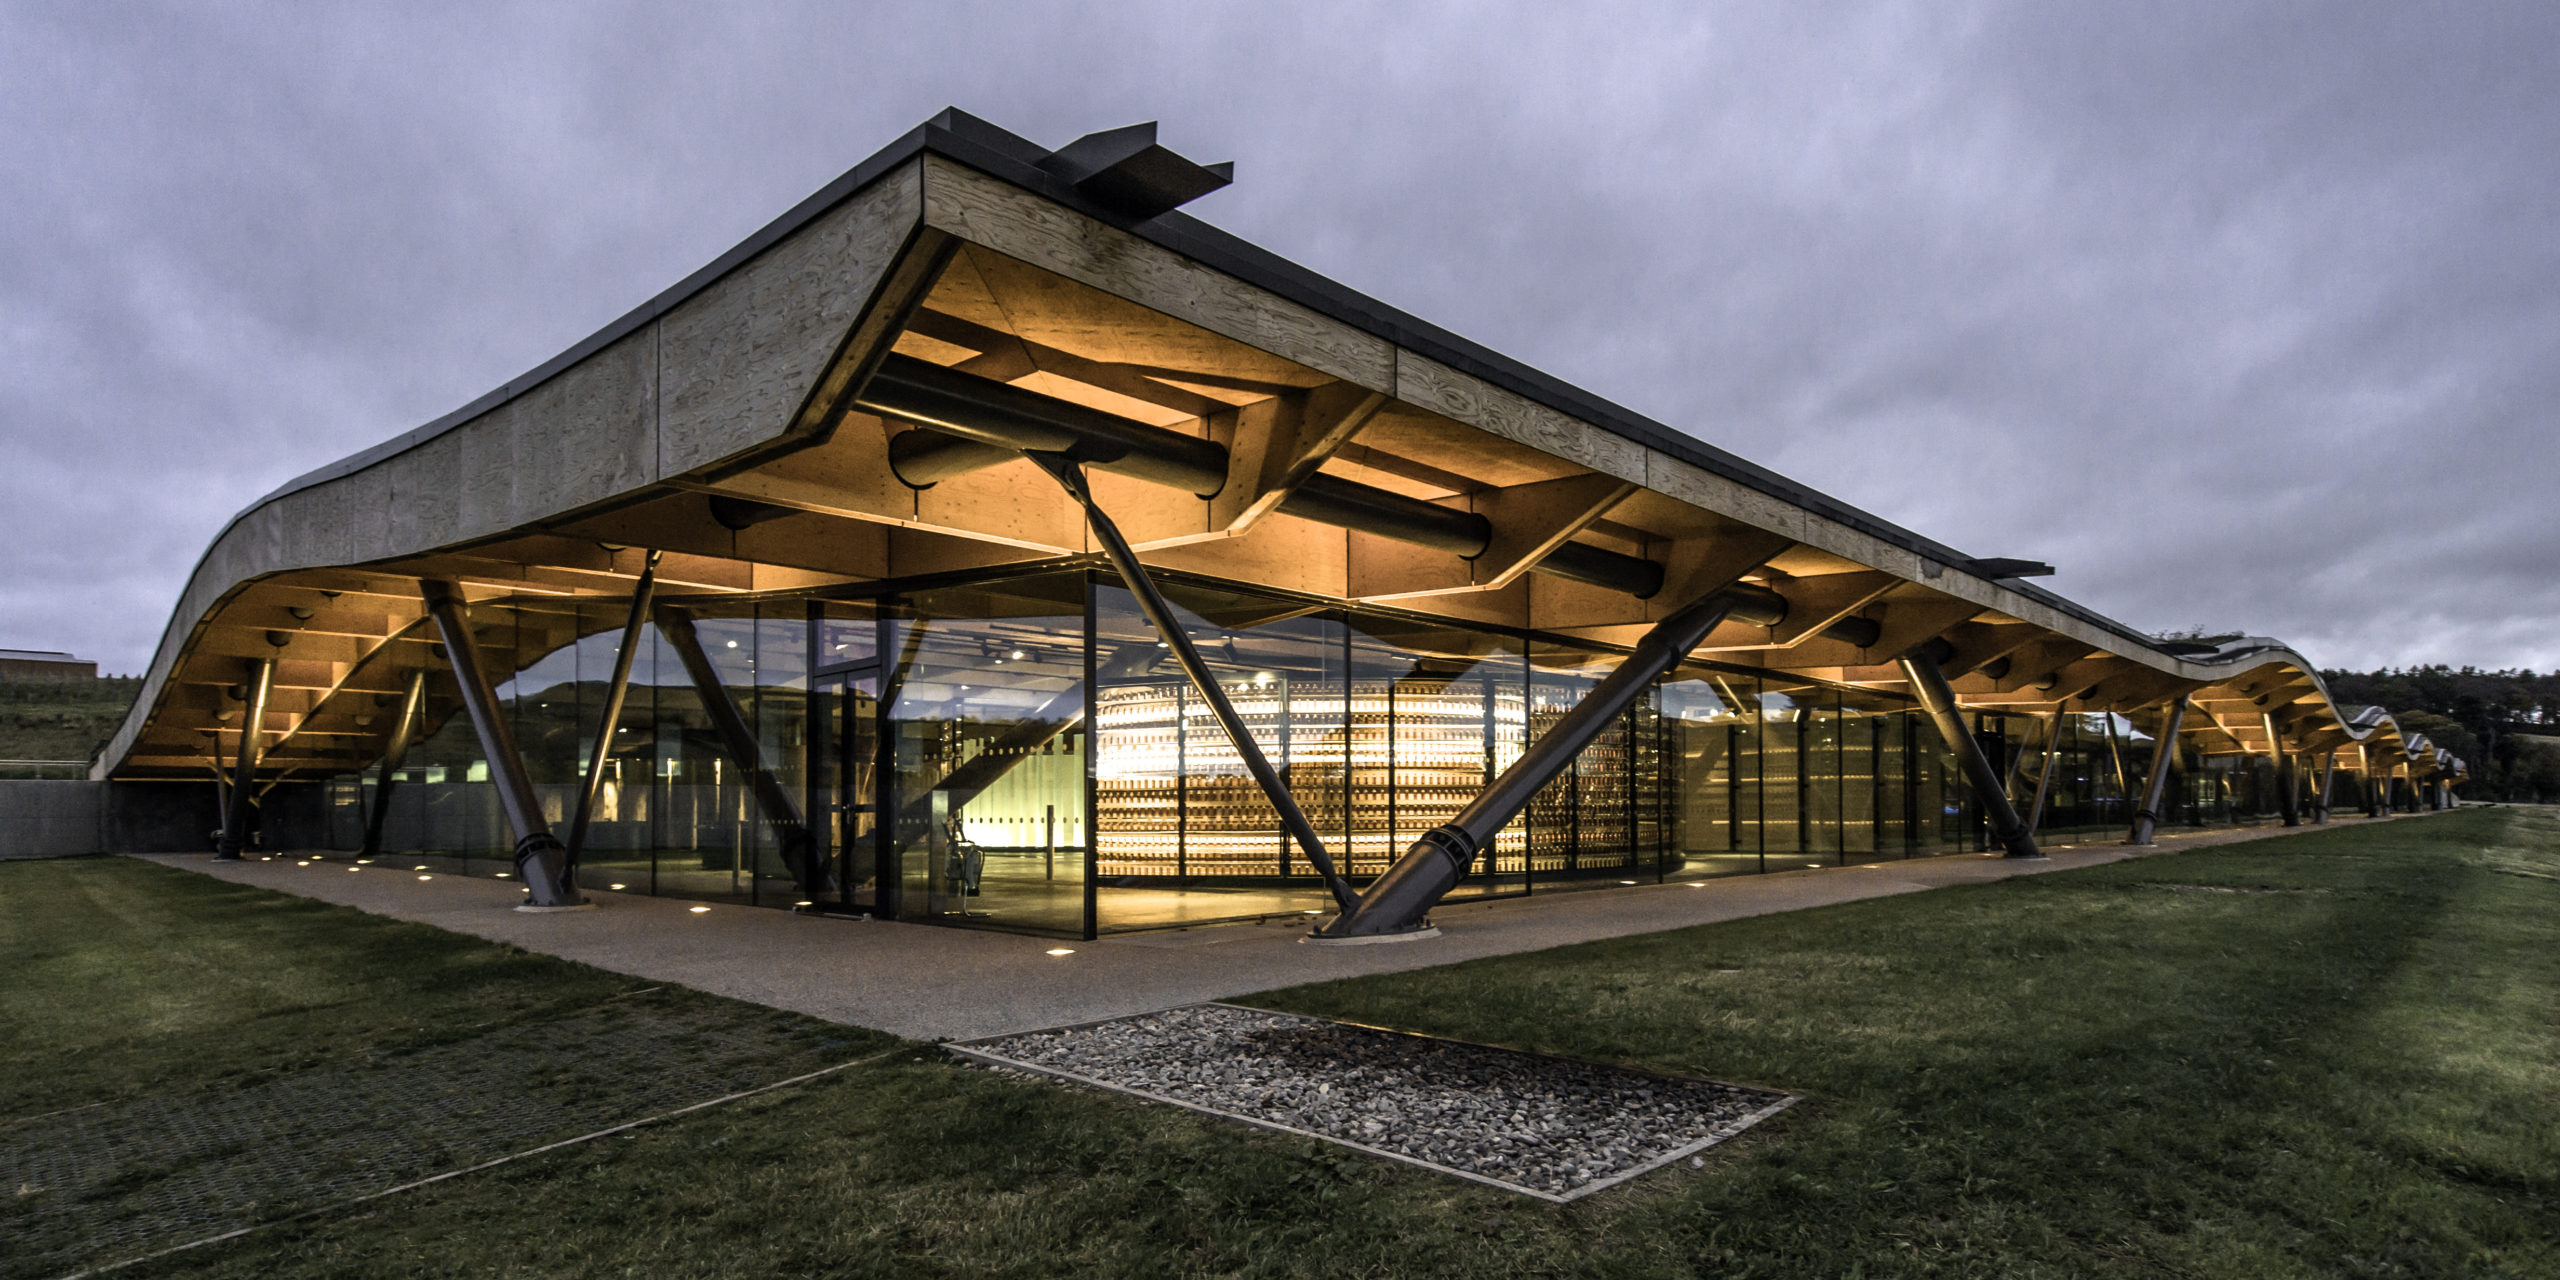 The new Macallan distillery opened on Speyside in 2018.